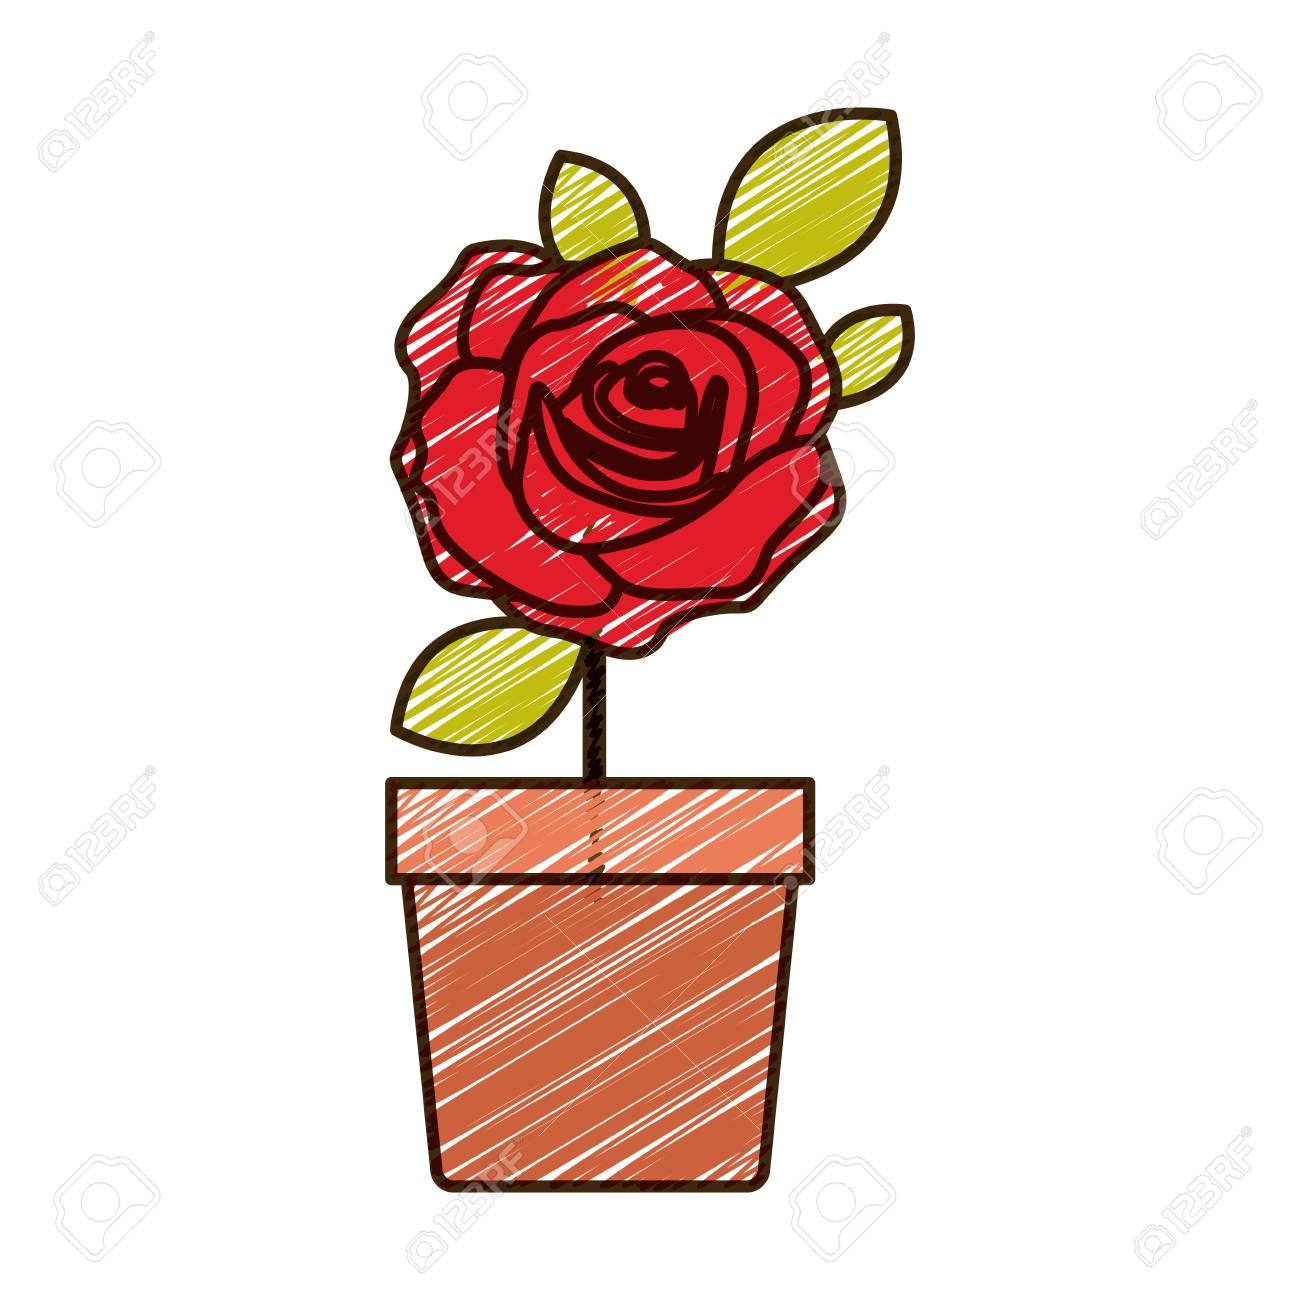 Color Pencil Drawing Of Flowered Red Rose With Leaves And Stem ...